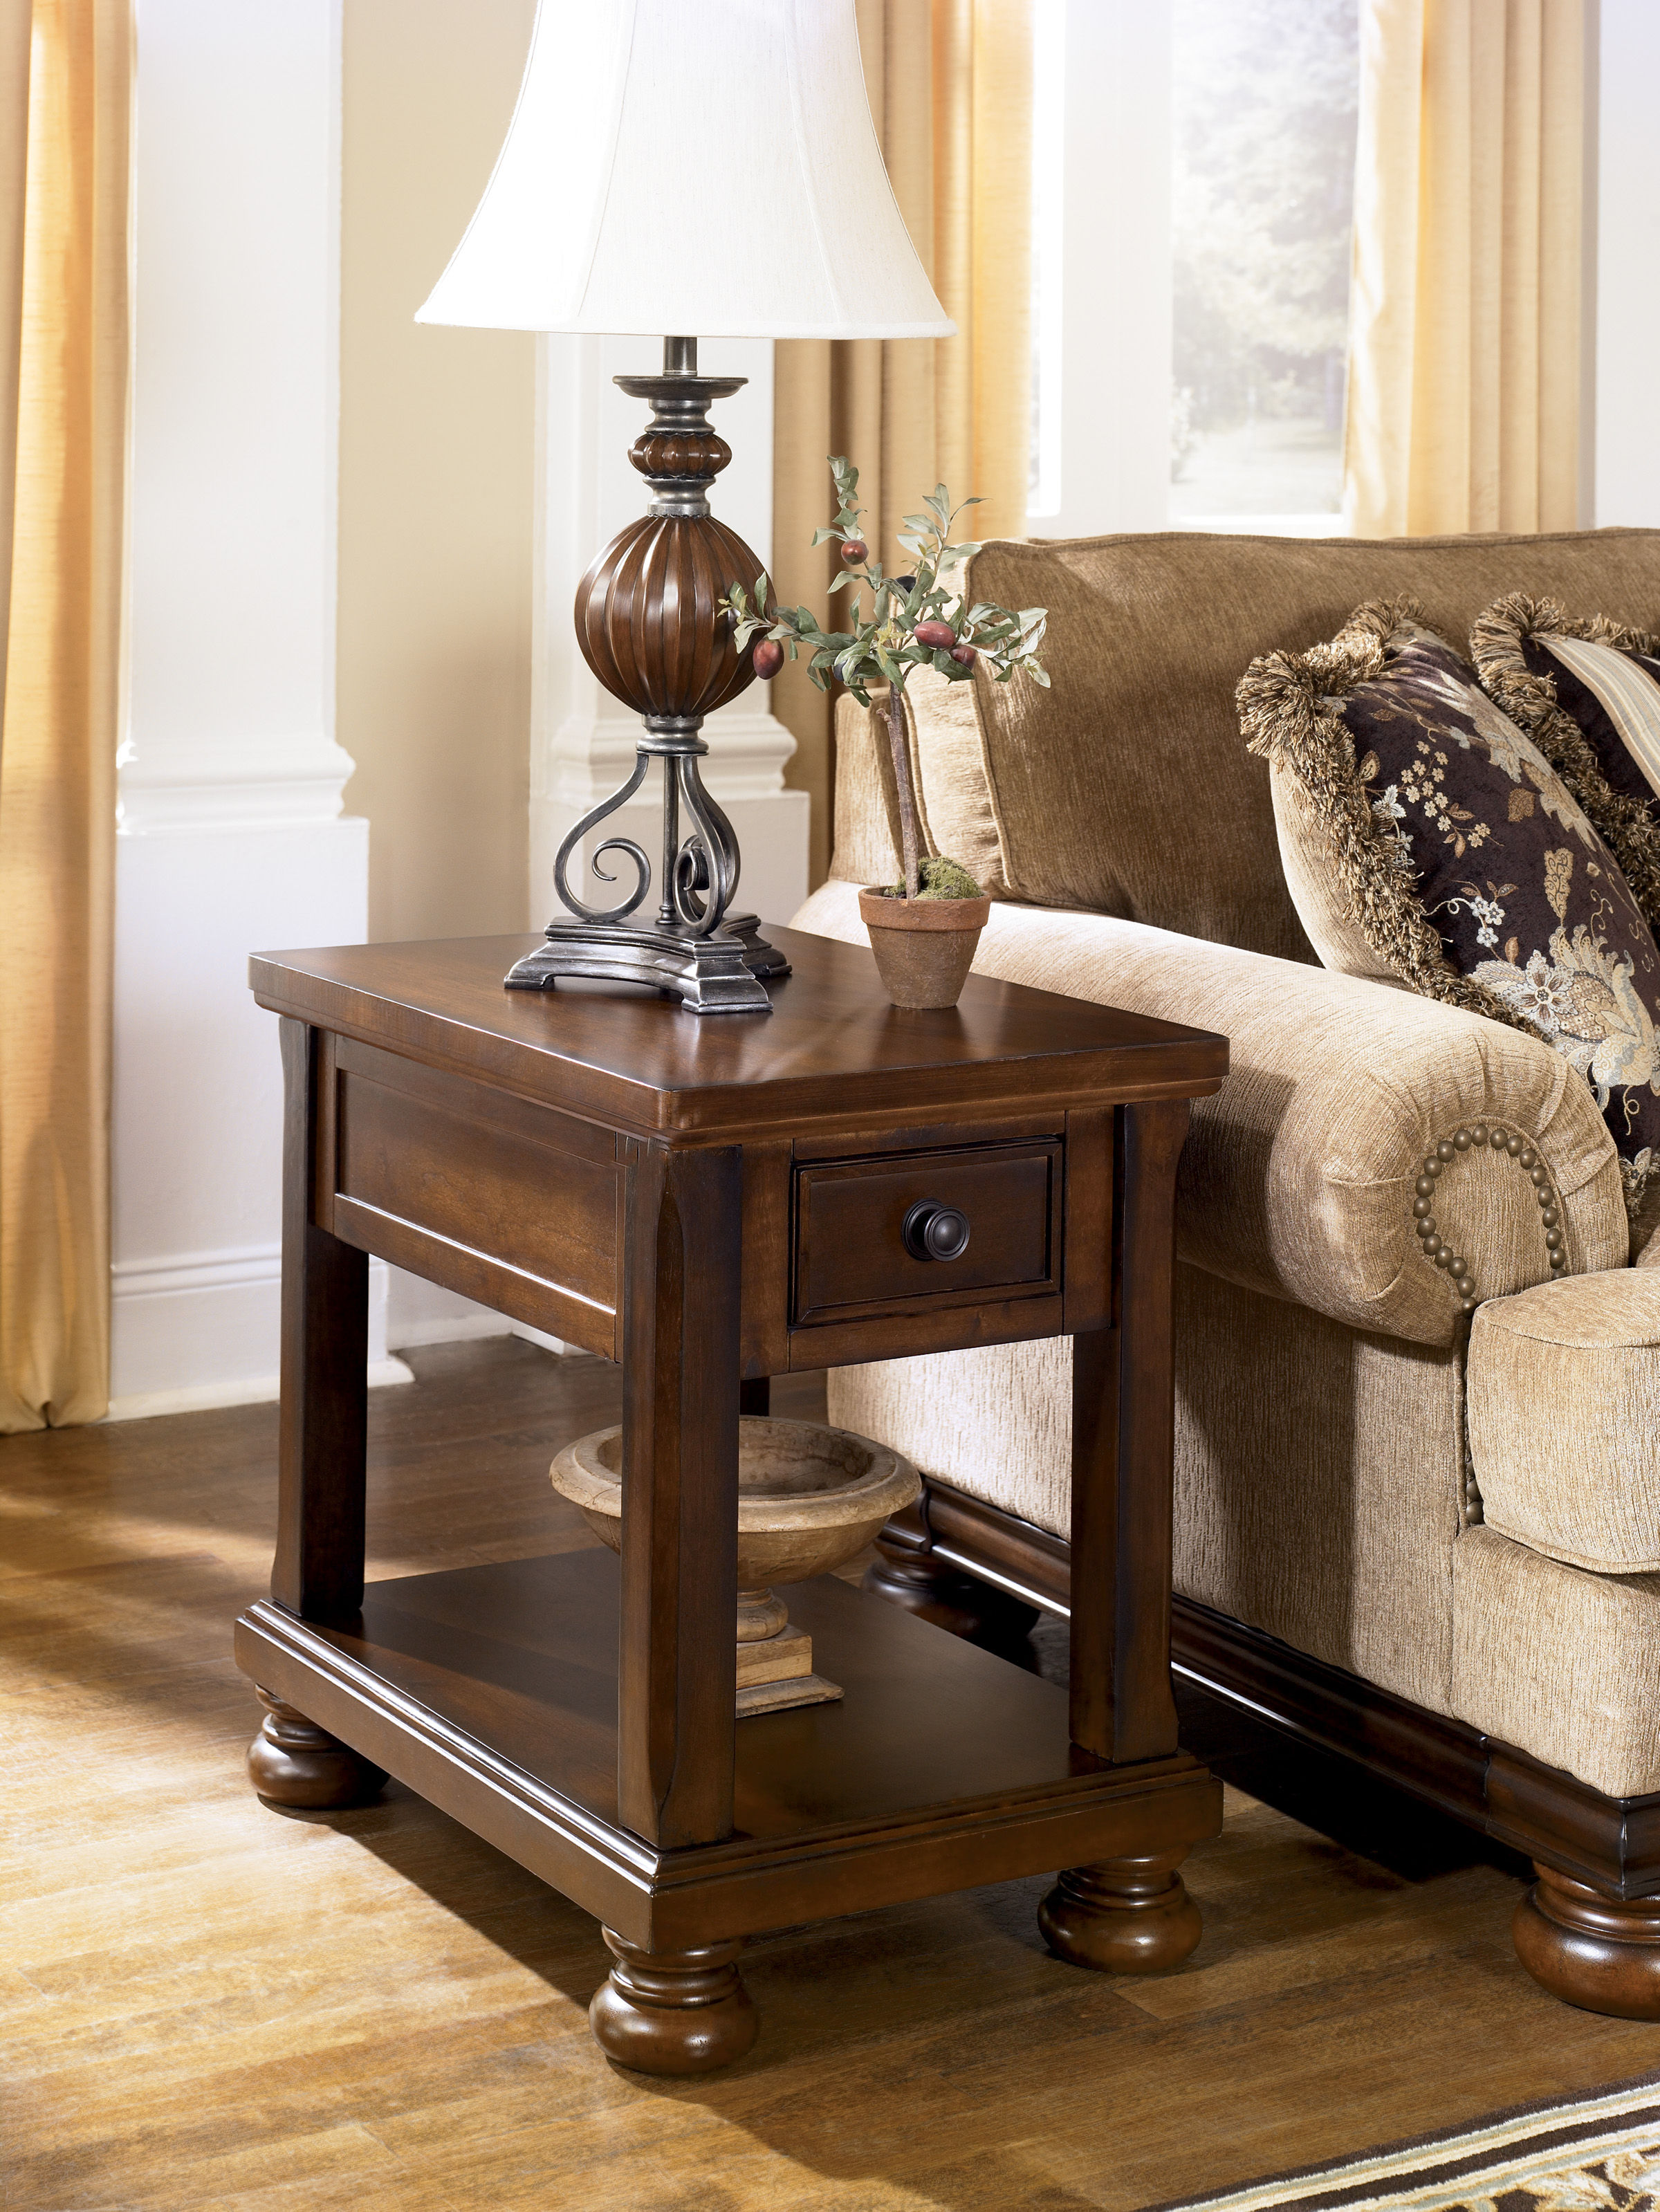 Ashley Furniture Porter Brown Chair Side Table | The Classy Home